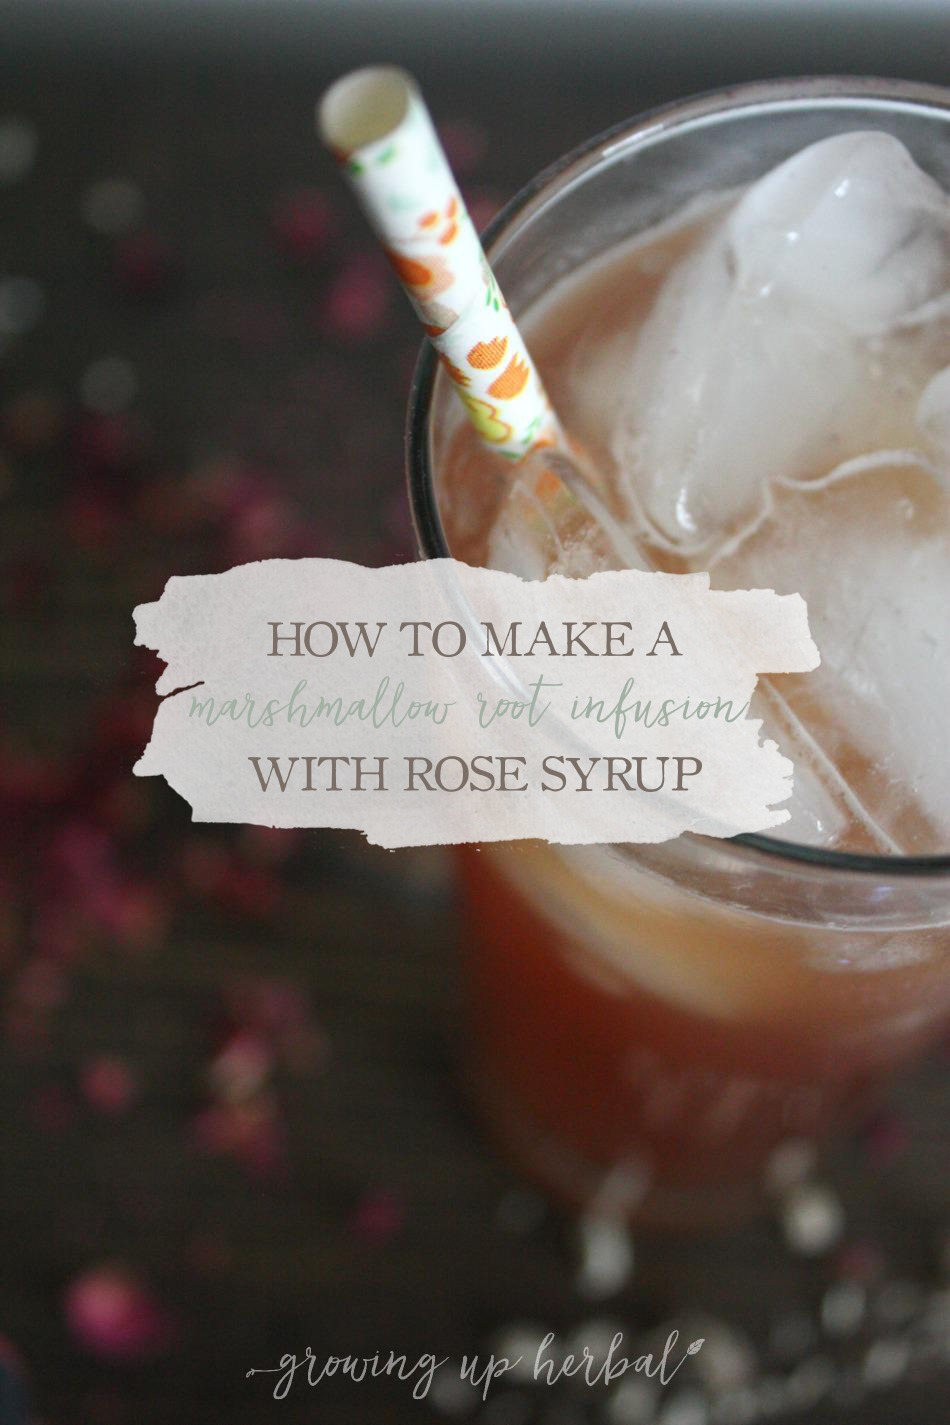 How To Make A Marshmallow Root Infusion With Rose Syrup | Growing Up Herbal | Promote healthy digestive system in your child with this soothing and tasty herbal remedy!